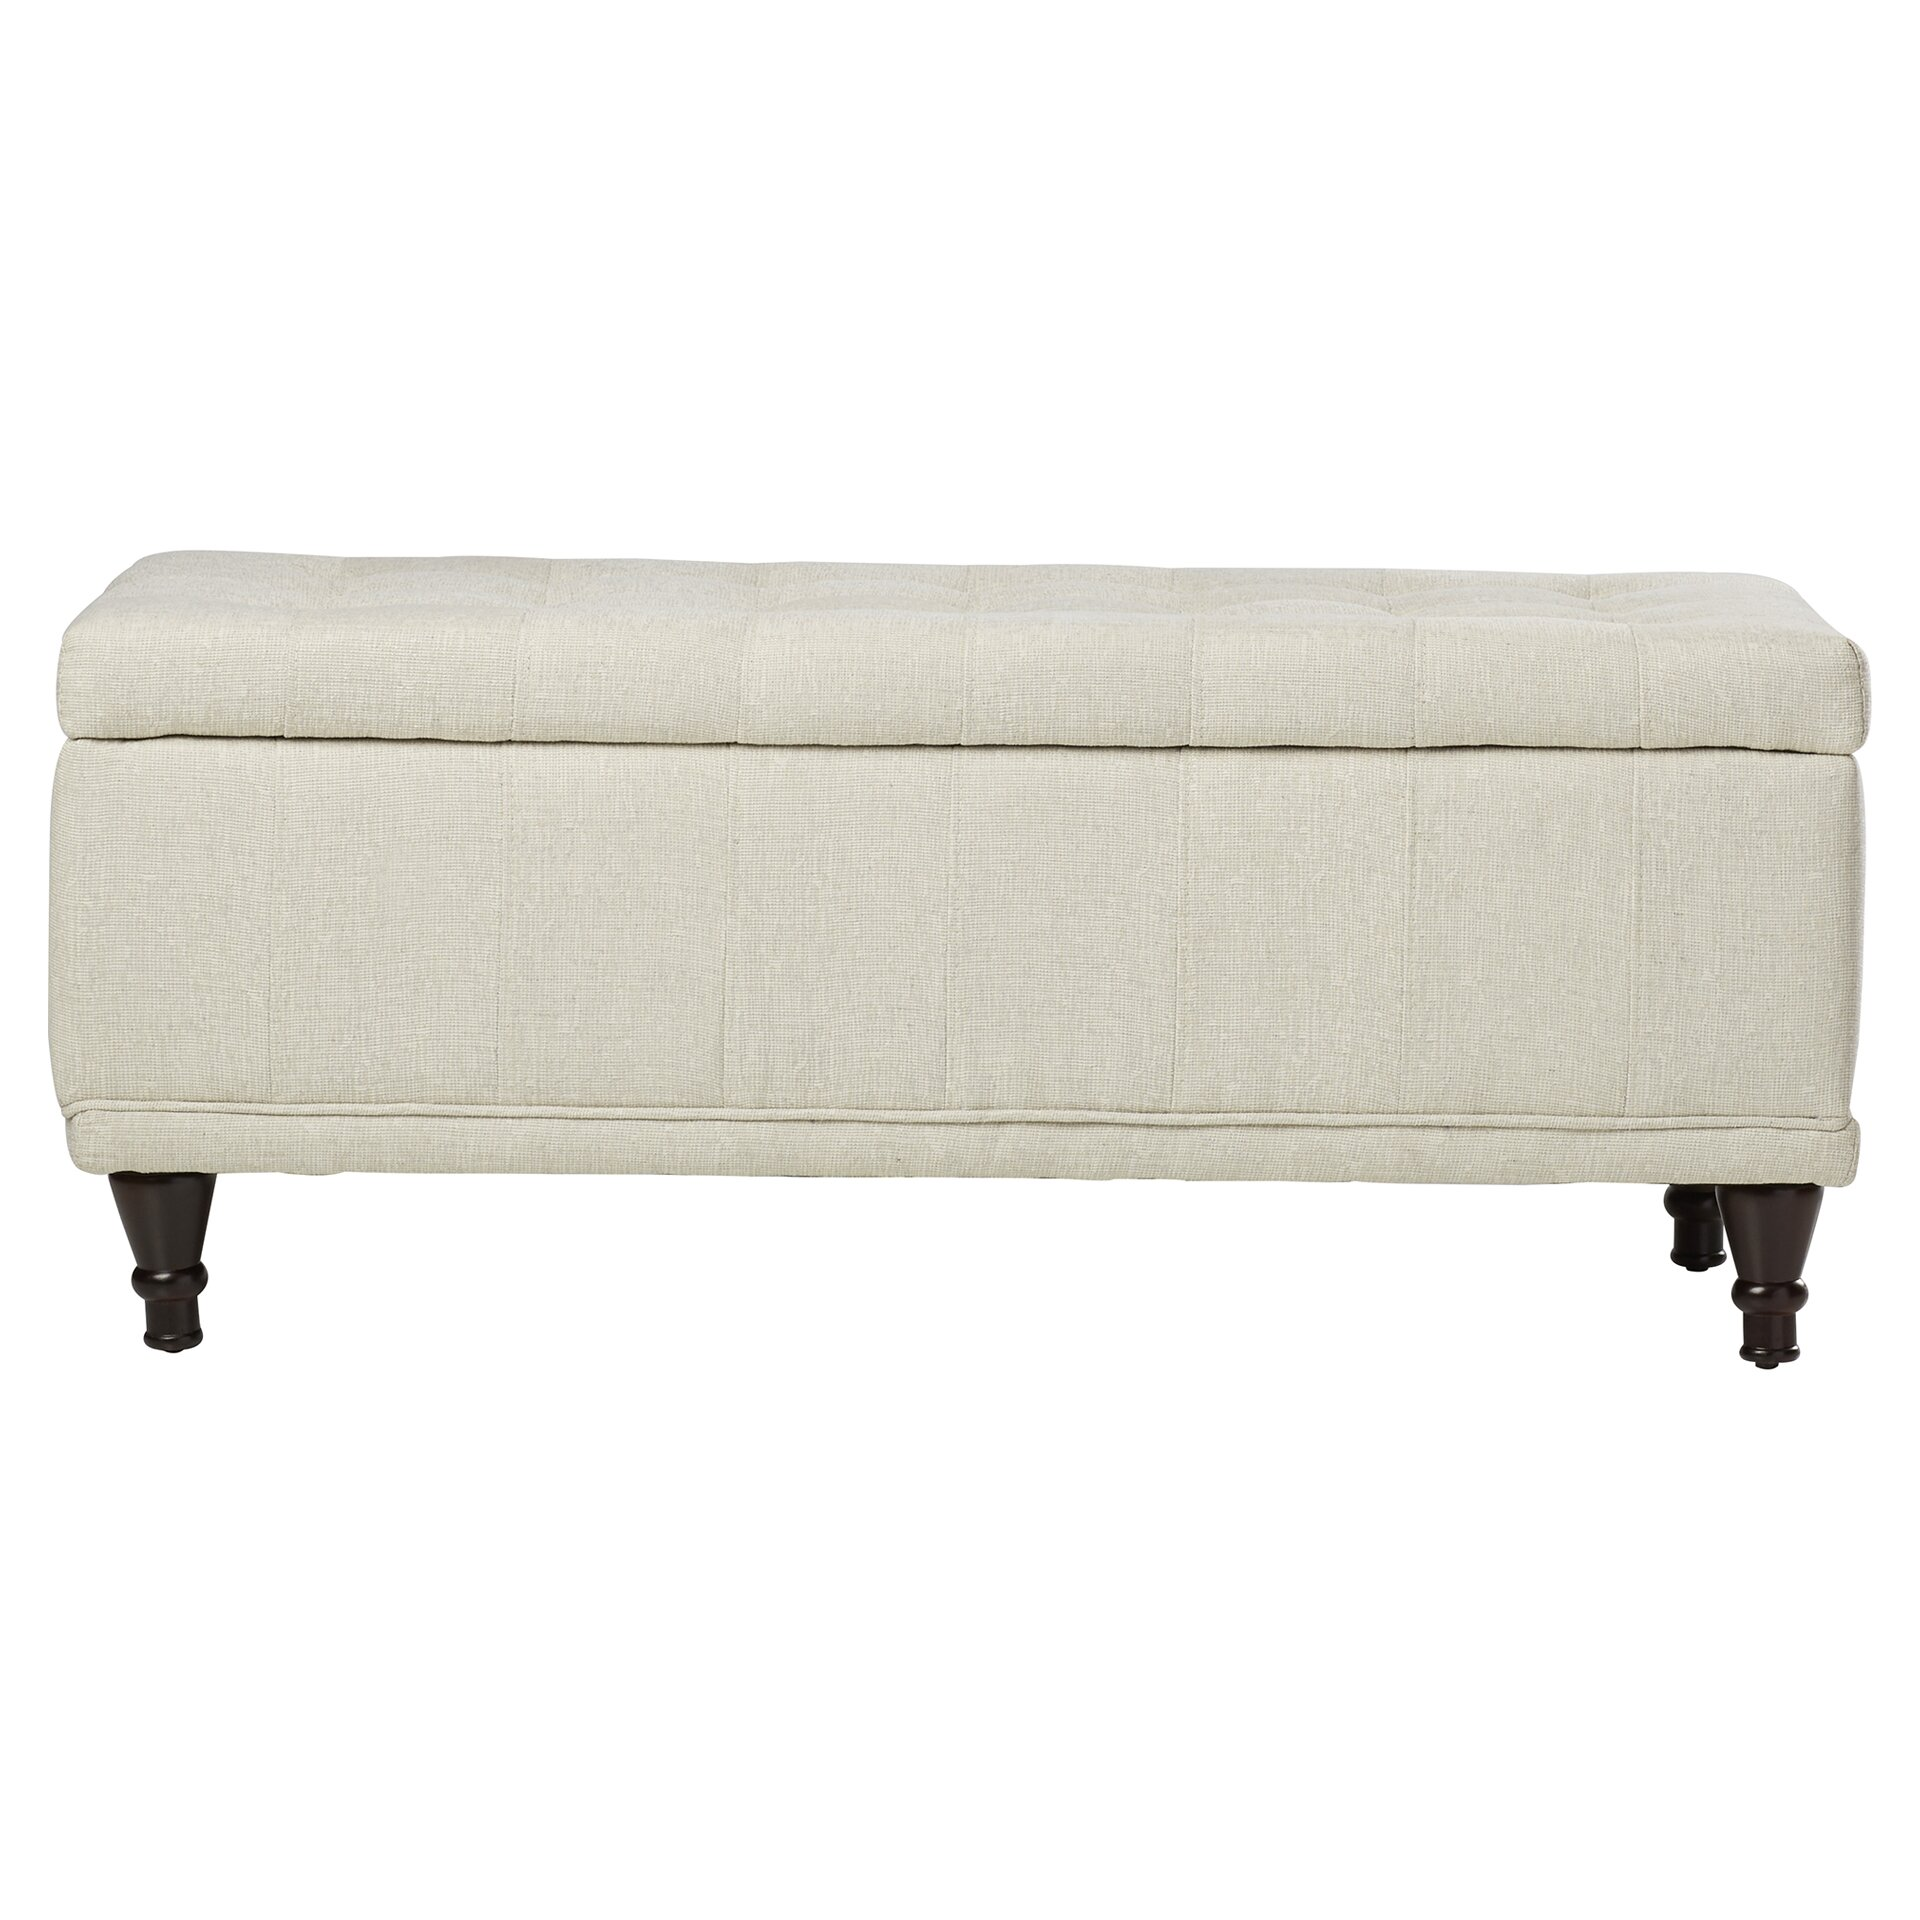 darby home co attles fabric bedroom storage ottoman